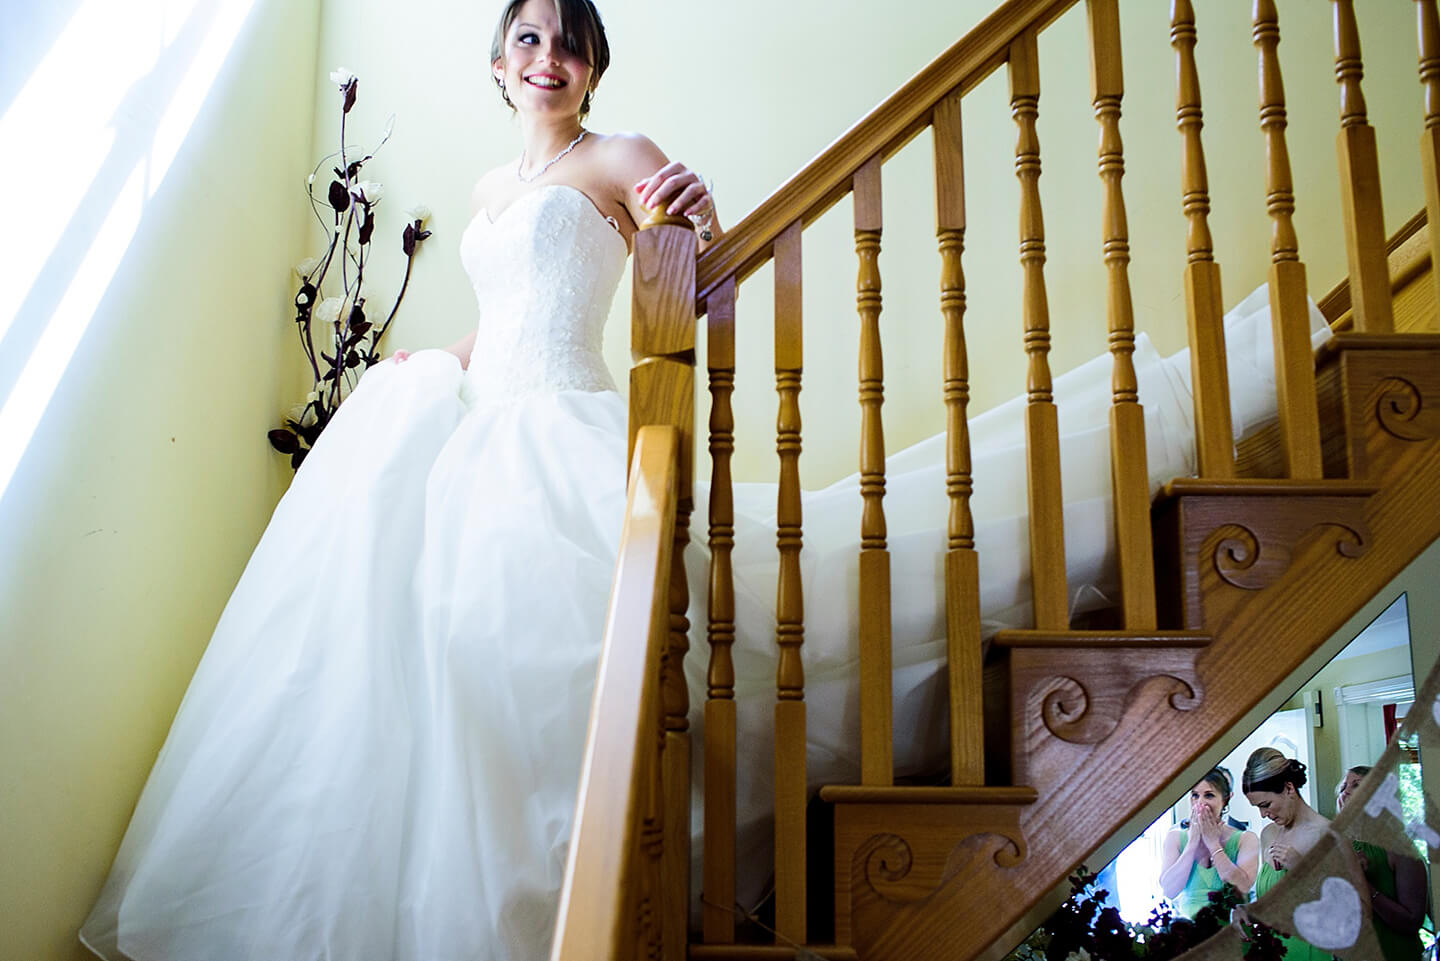 After finishing her bridal preparations in the Boudoir the bride makes her way to the wedding ceremony